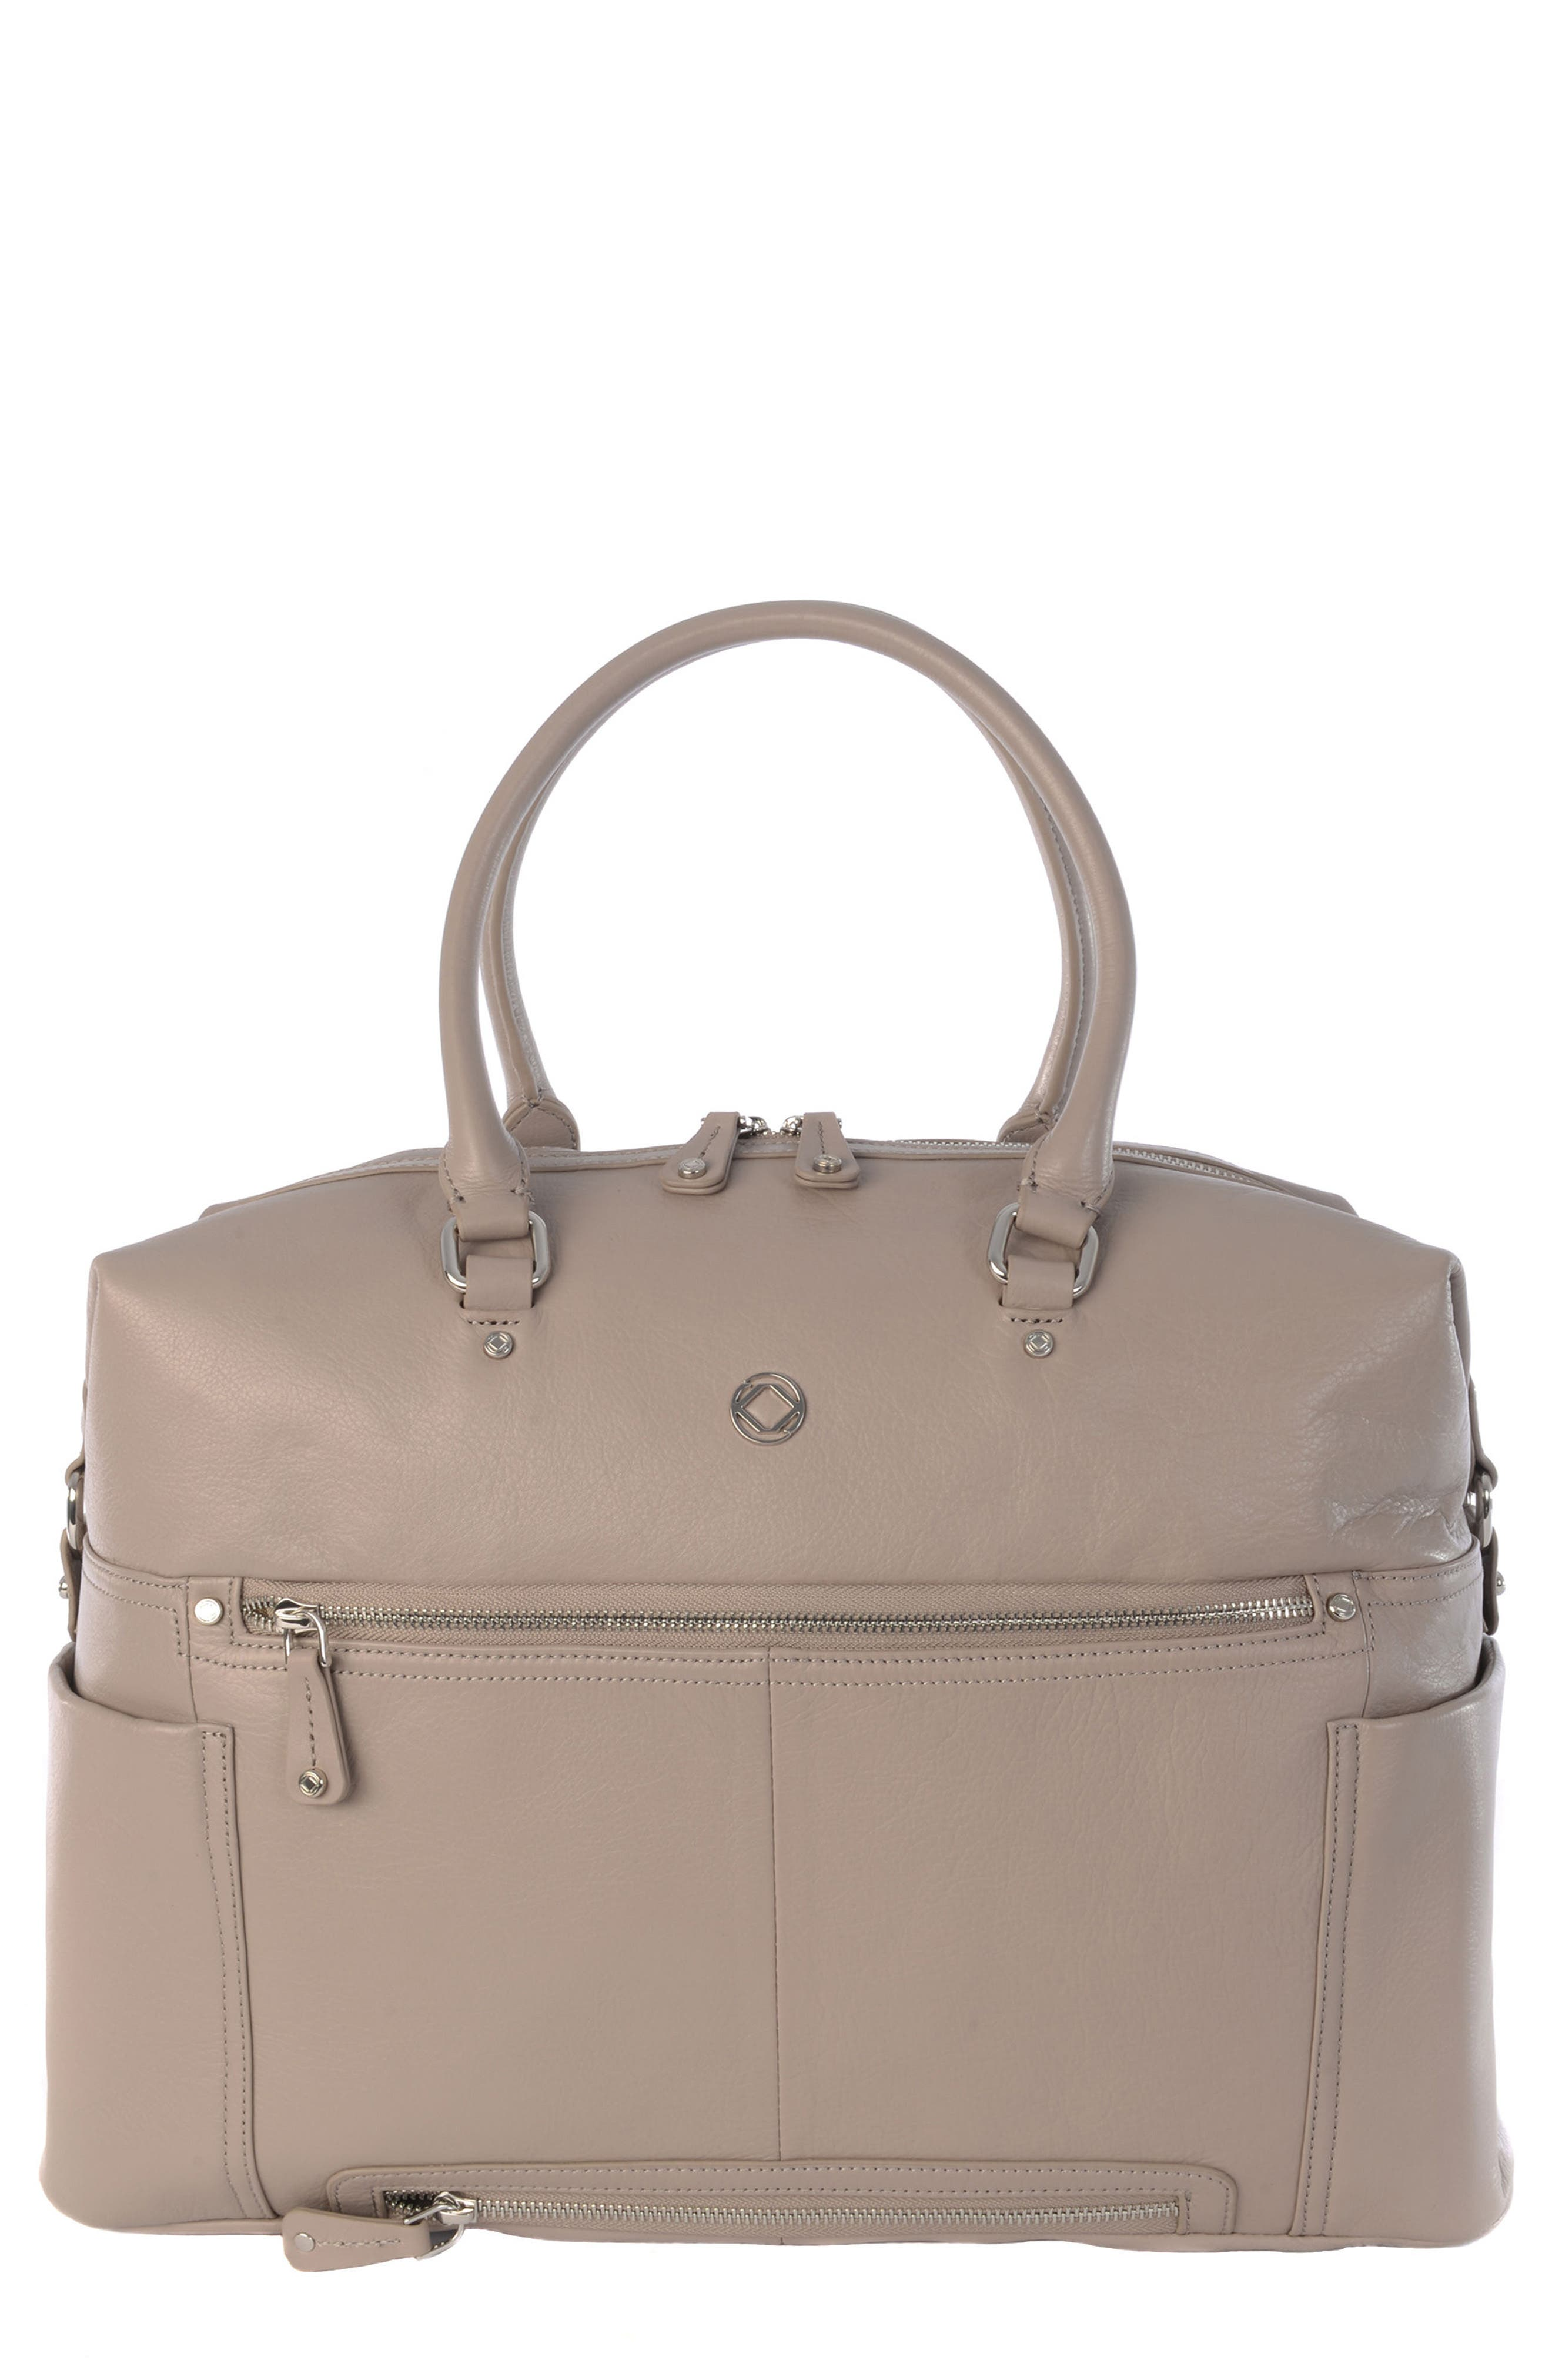 Alternate Image 1 Selected - Kerikit Thea Leather Diaper Bag